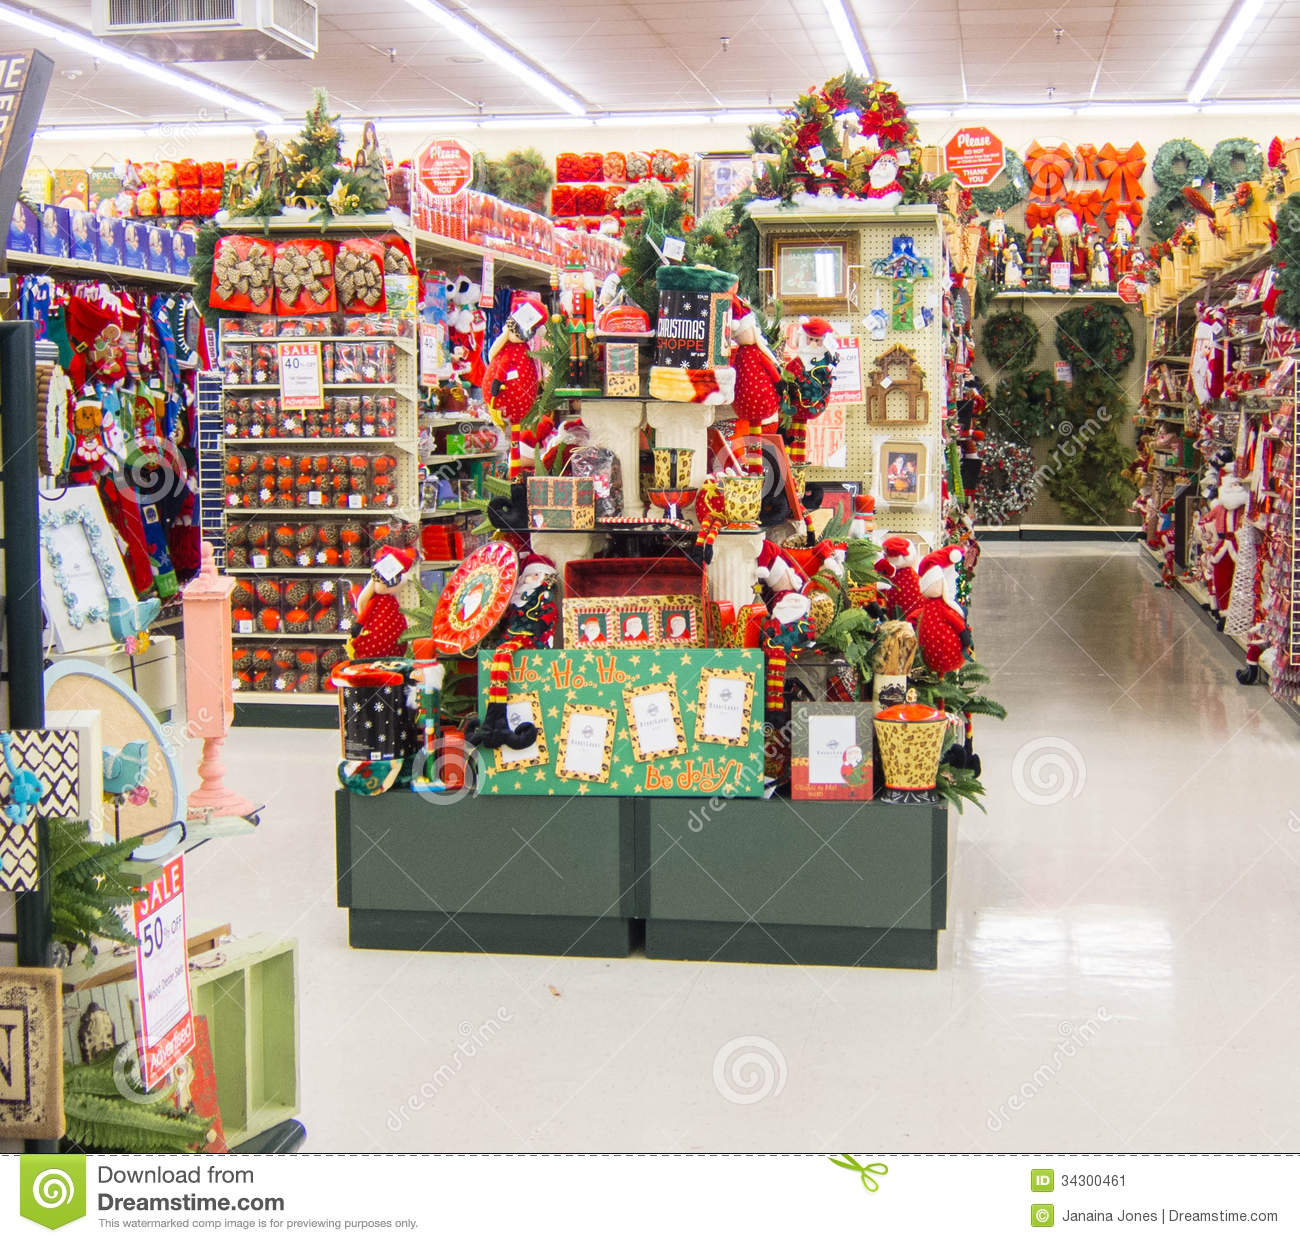 christmas-decorations-section-decoration-store-34300461.jpg